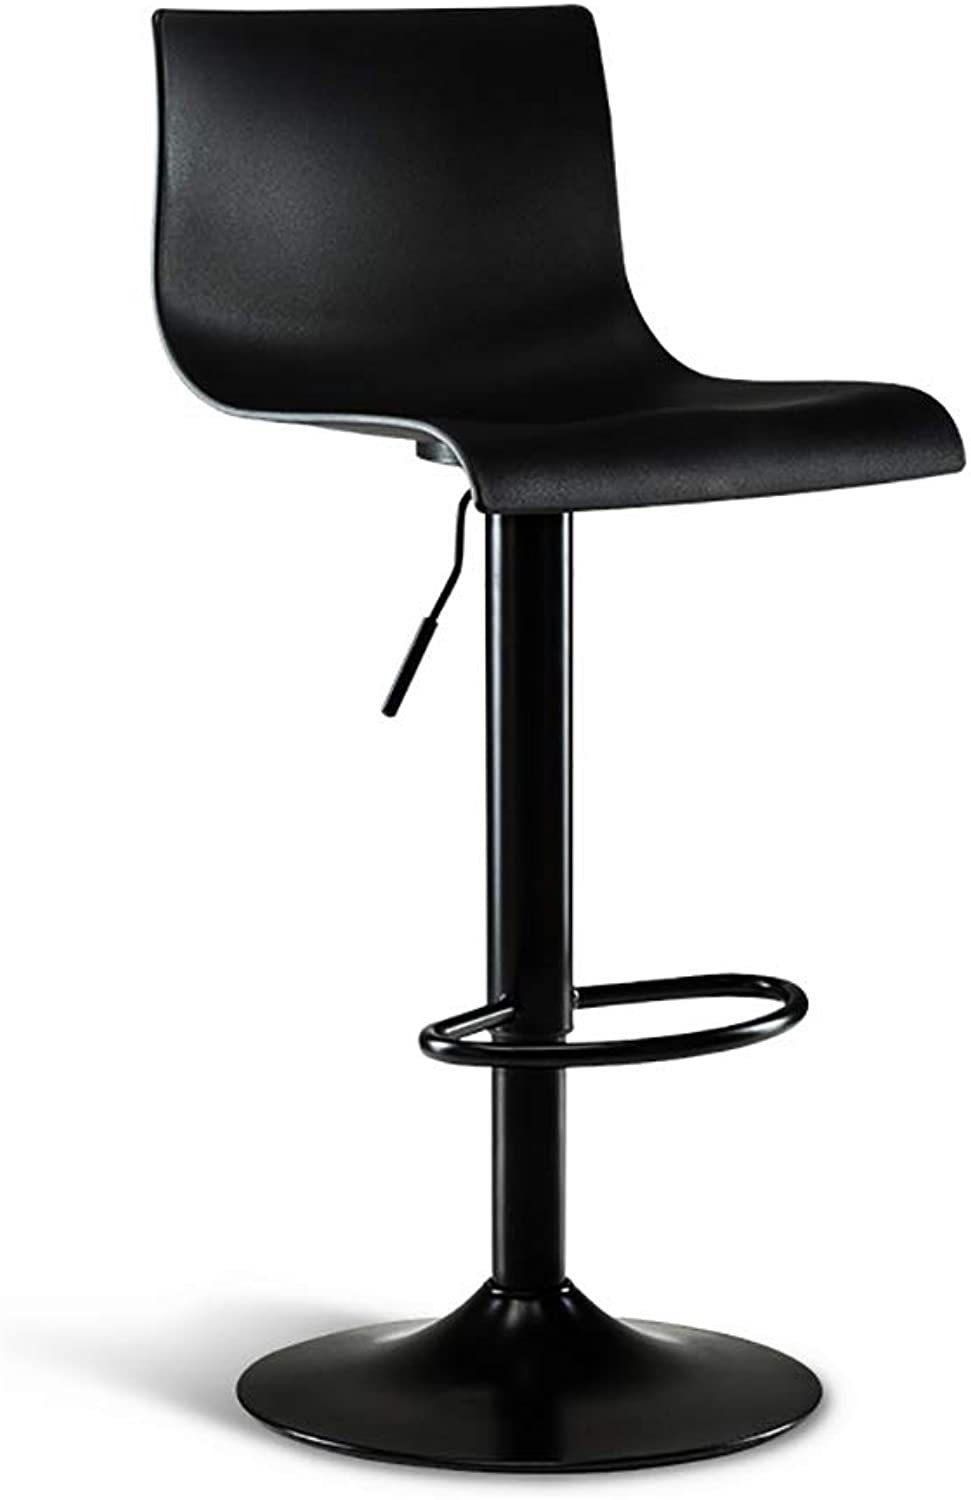 Bar Chair Lift Modern Minimalist bar Stool high Stool bar Chair redating high Stool